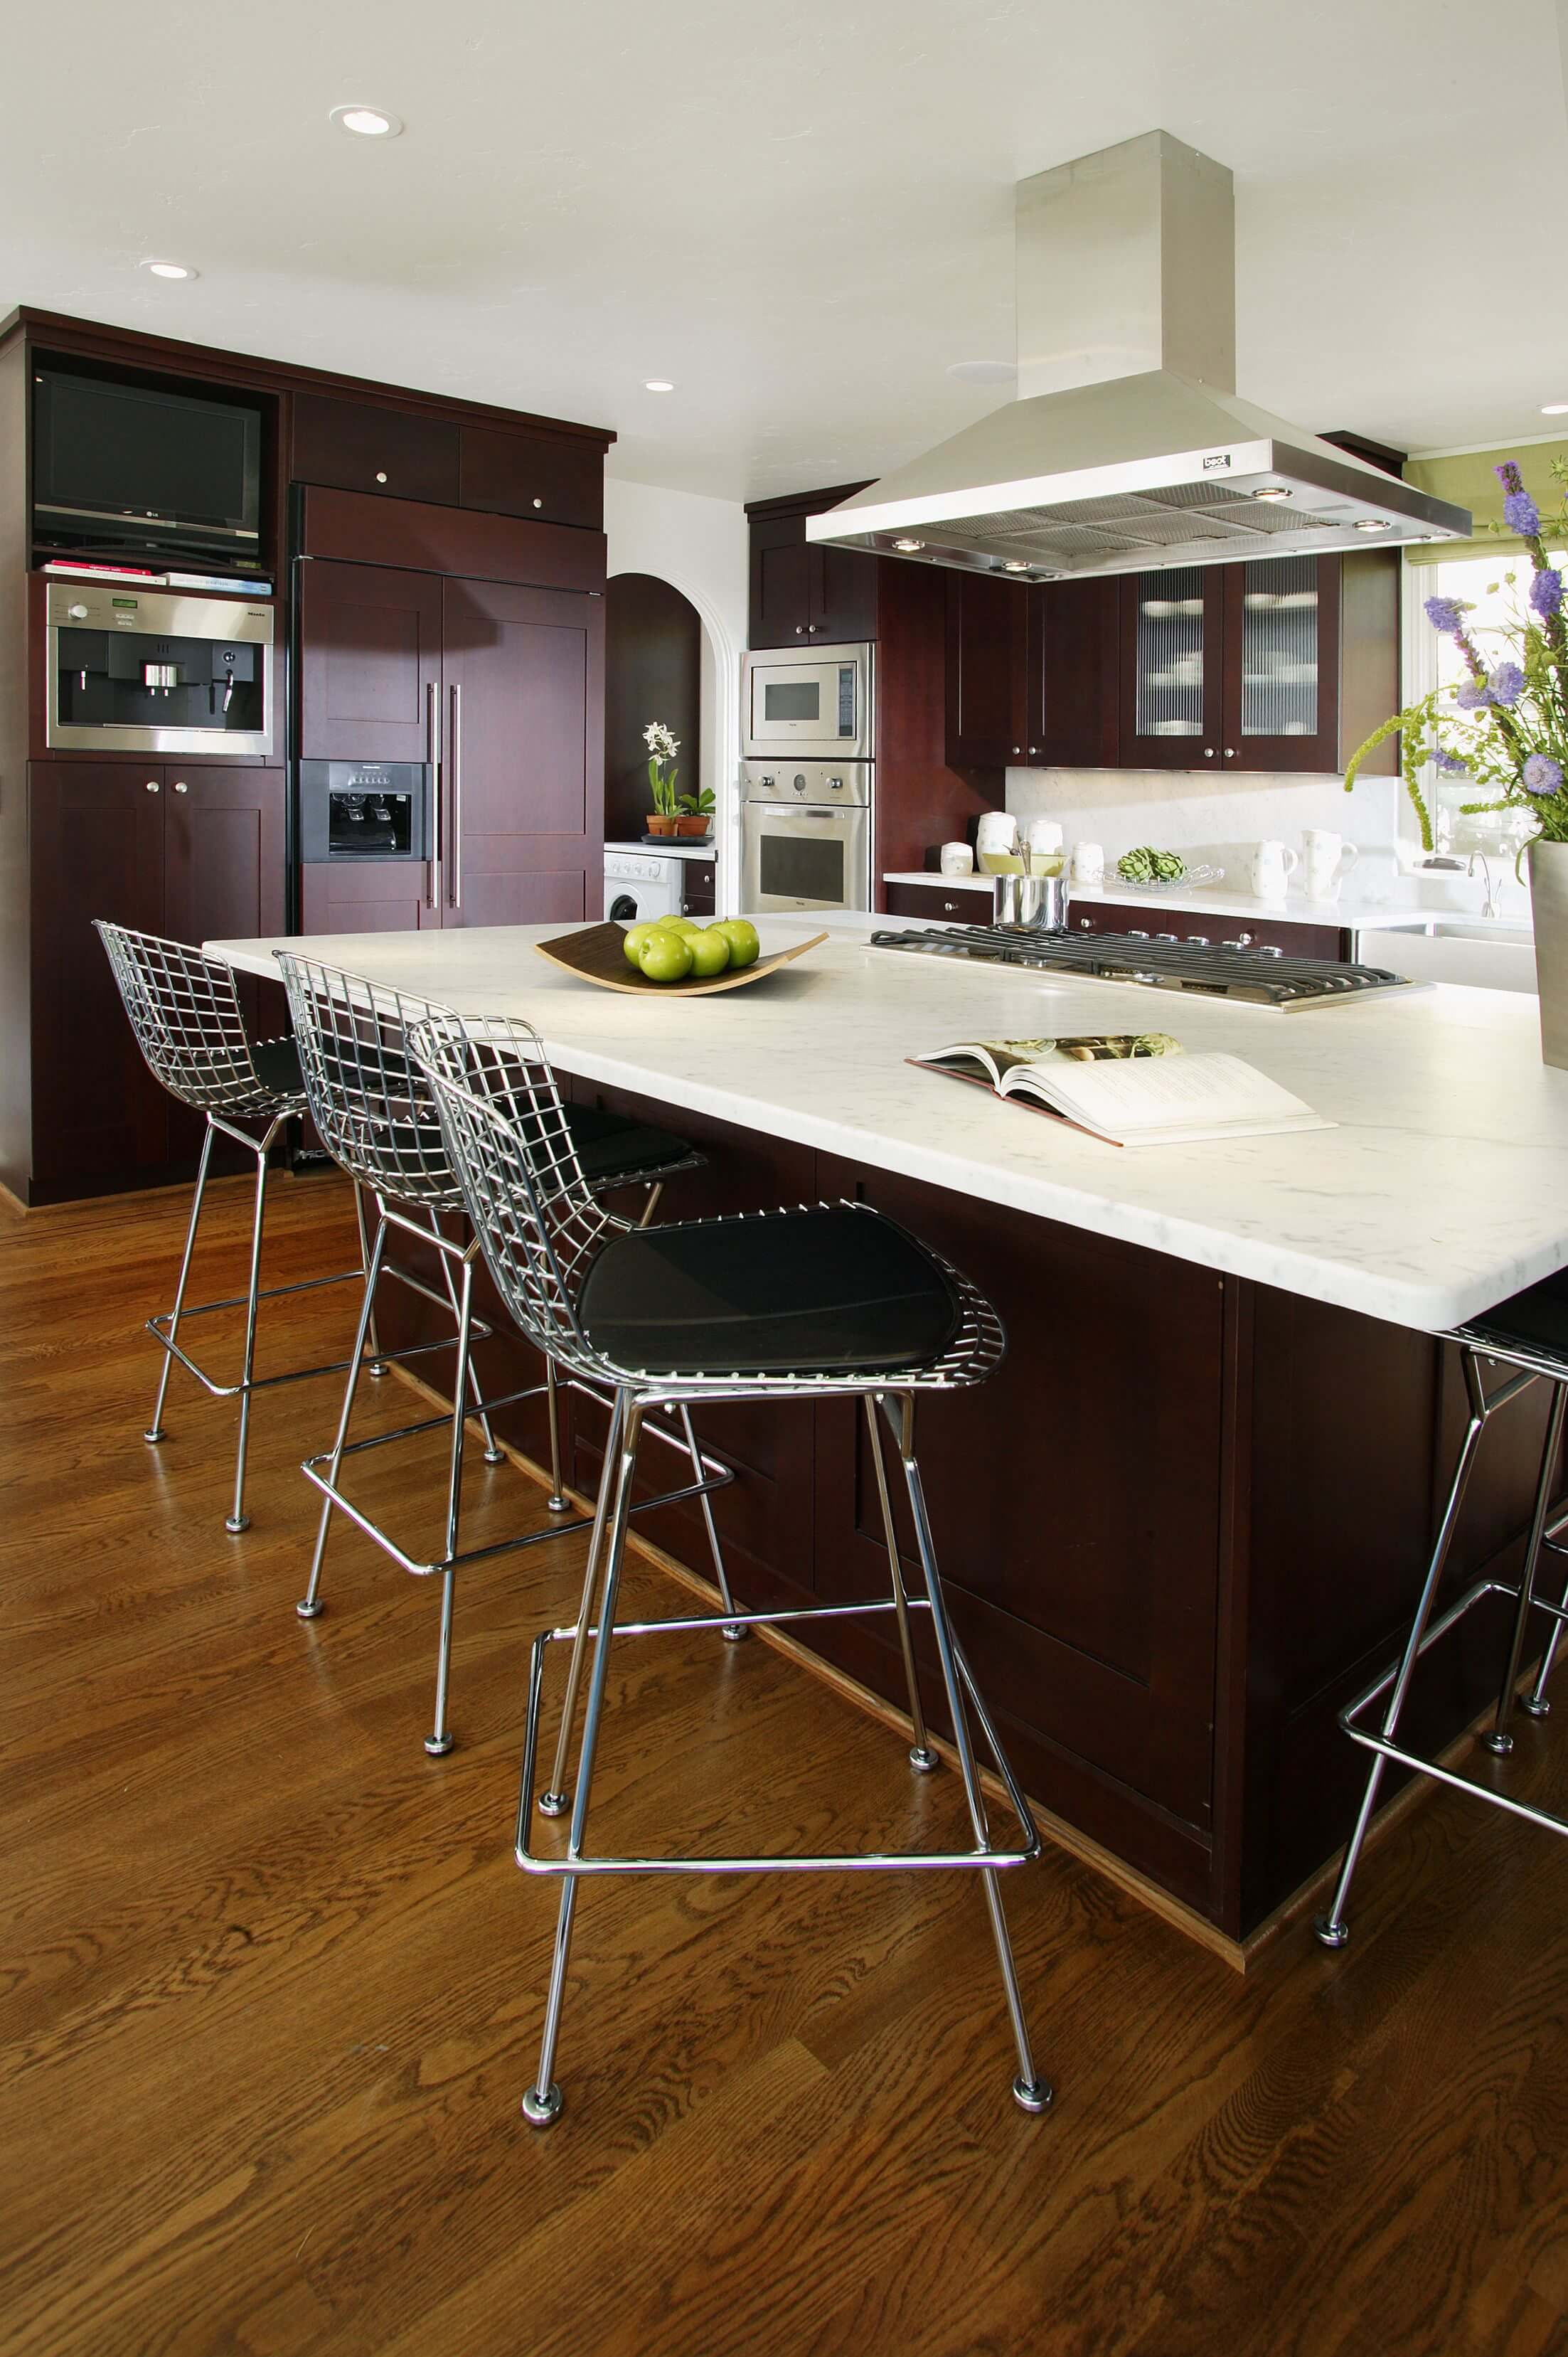 High contrast look in this kitchen, courtesy of dark stained cabinetry, white countertops, and bold, brushed aluminum appliances over natural hardwood floor.